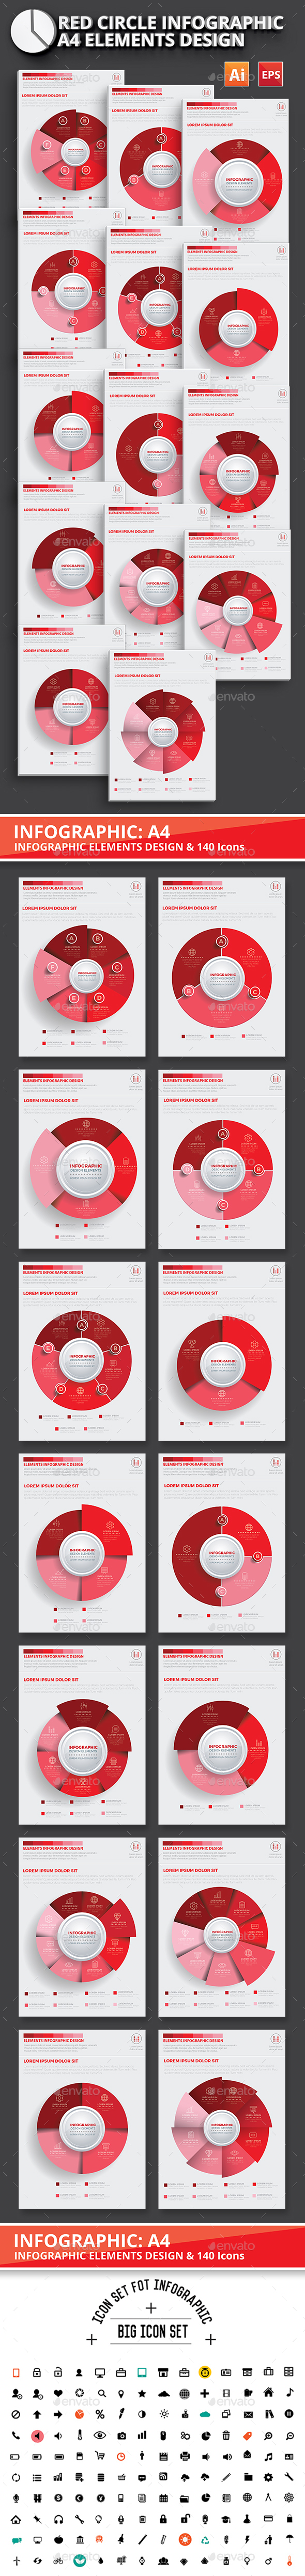 Red Circle Infographic Design